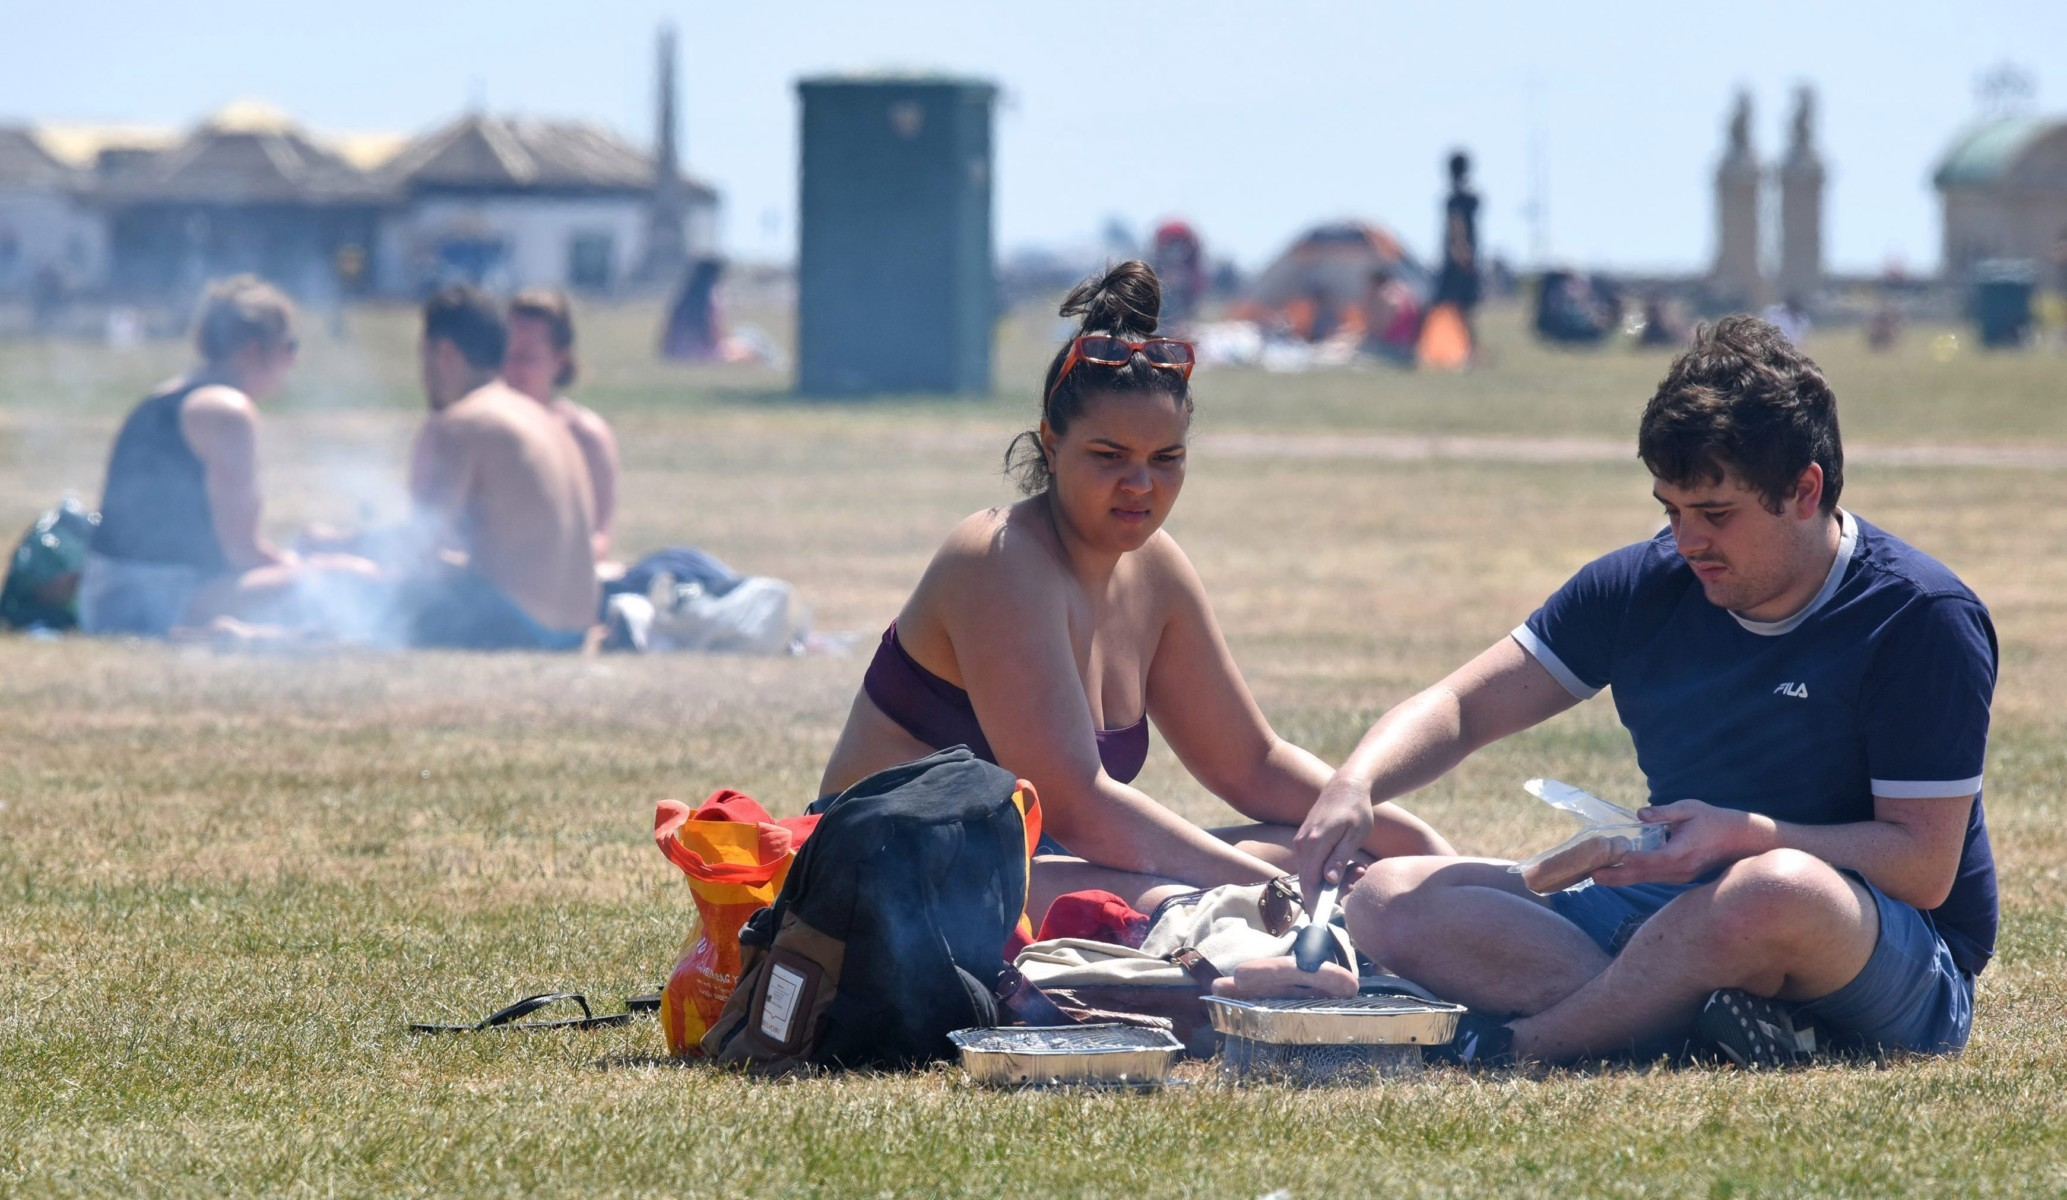 THE UK will see the last of the heatwave this weekend as next week rainstorms are set to batter parts of the country.